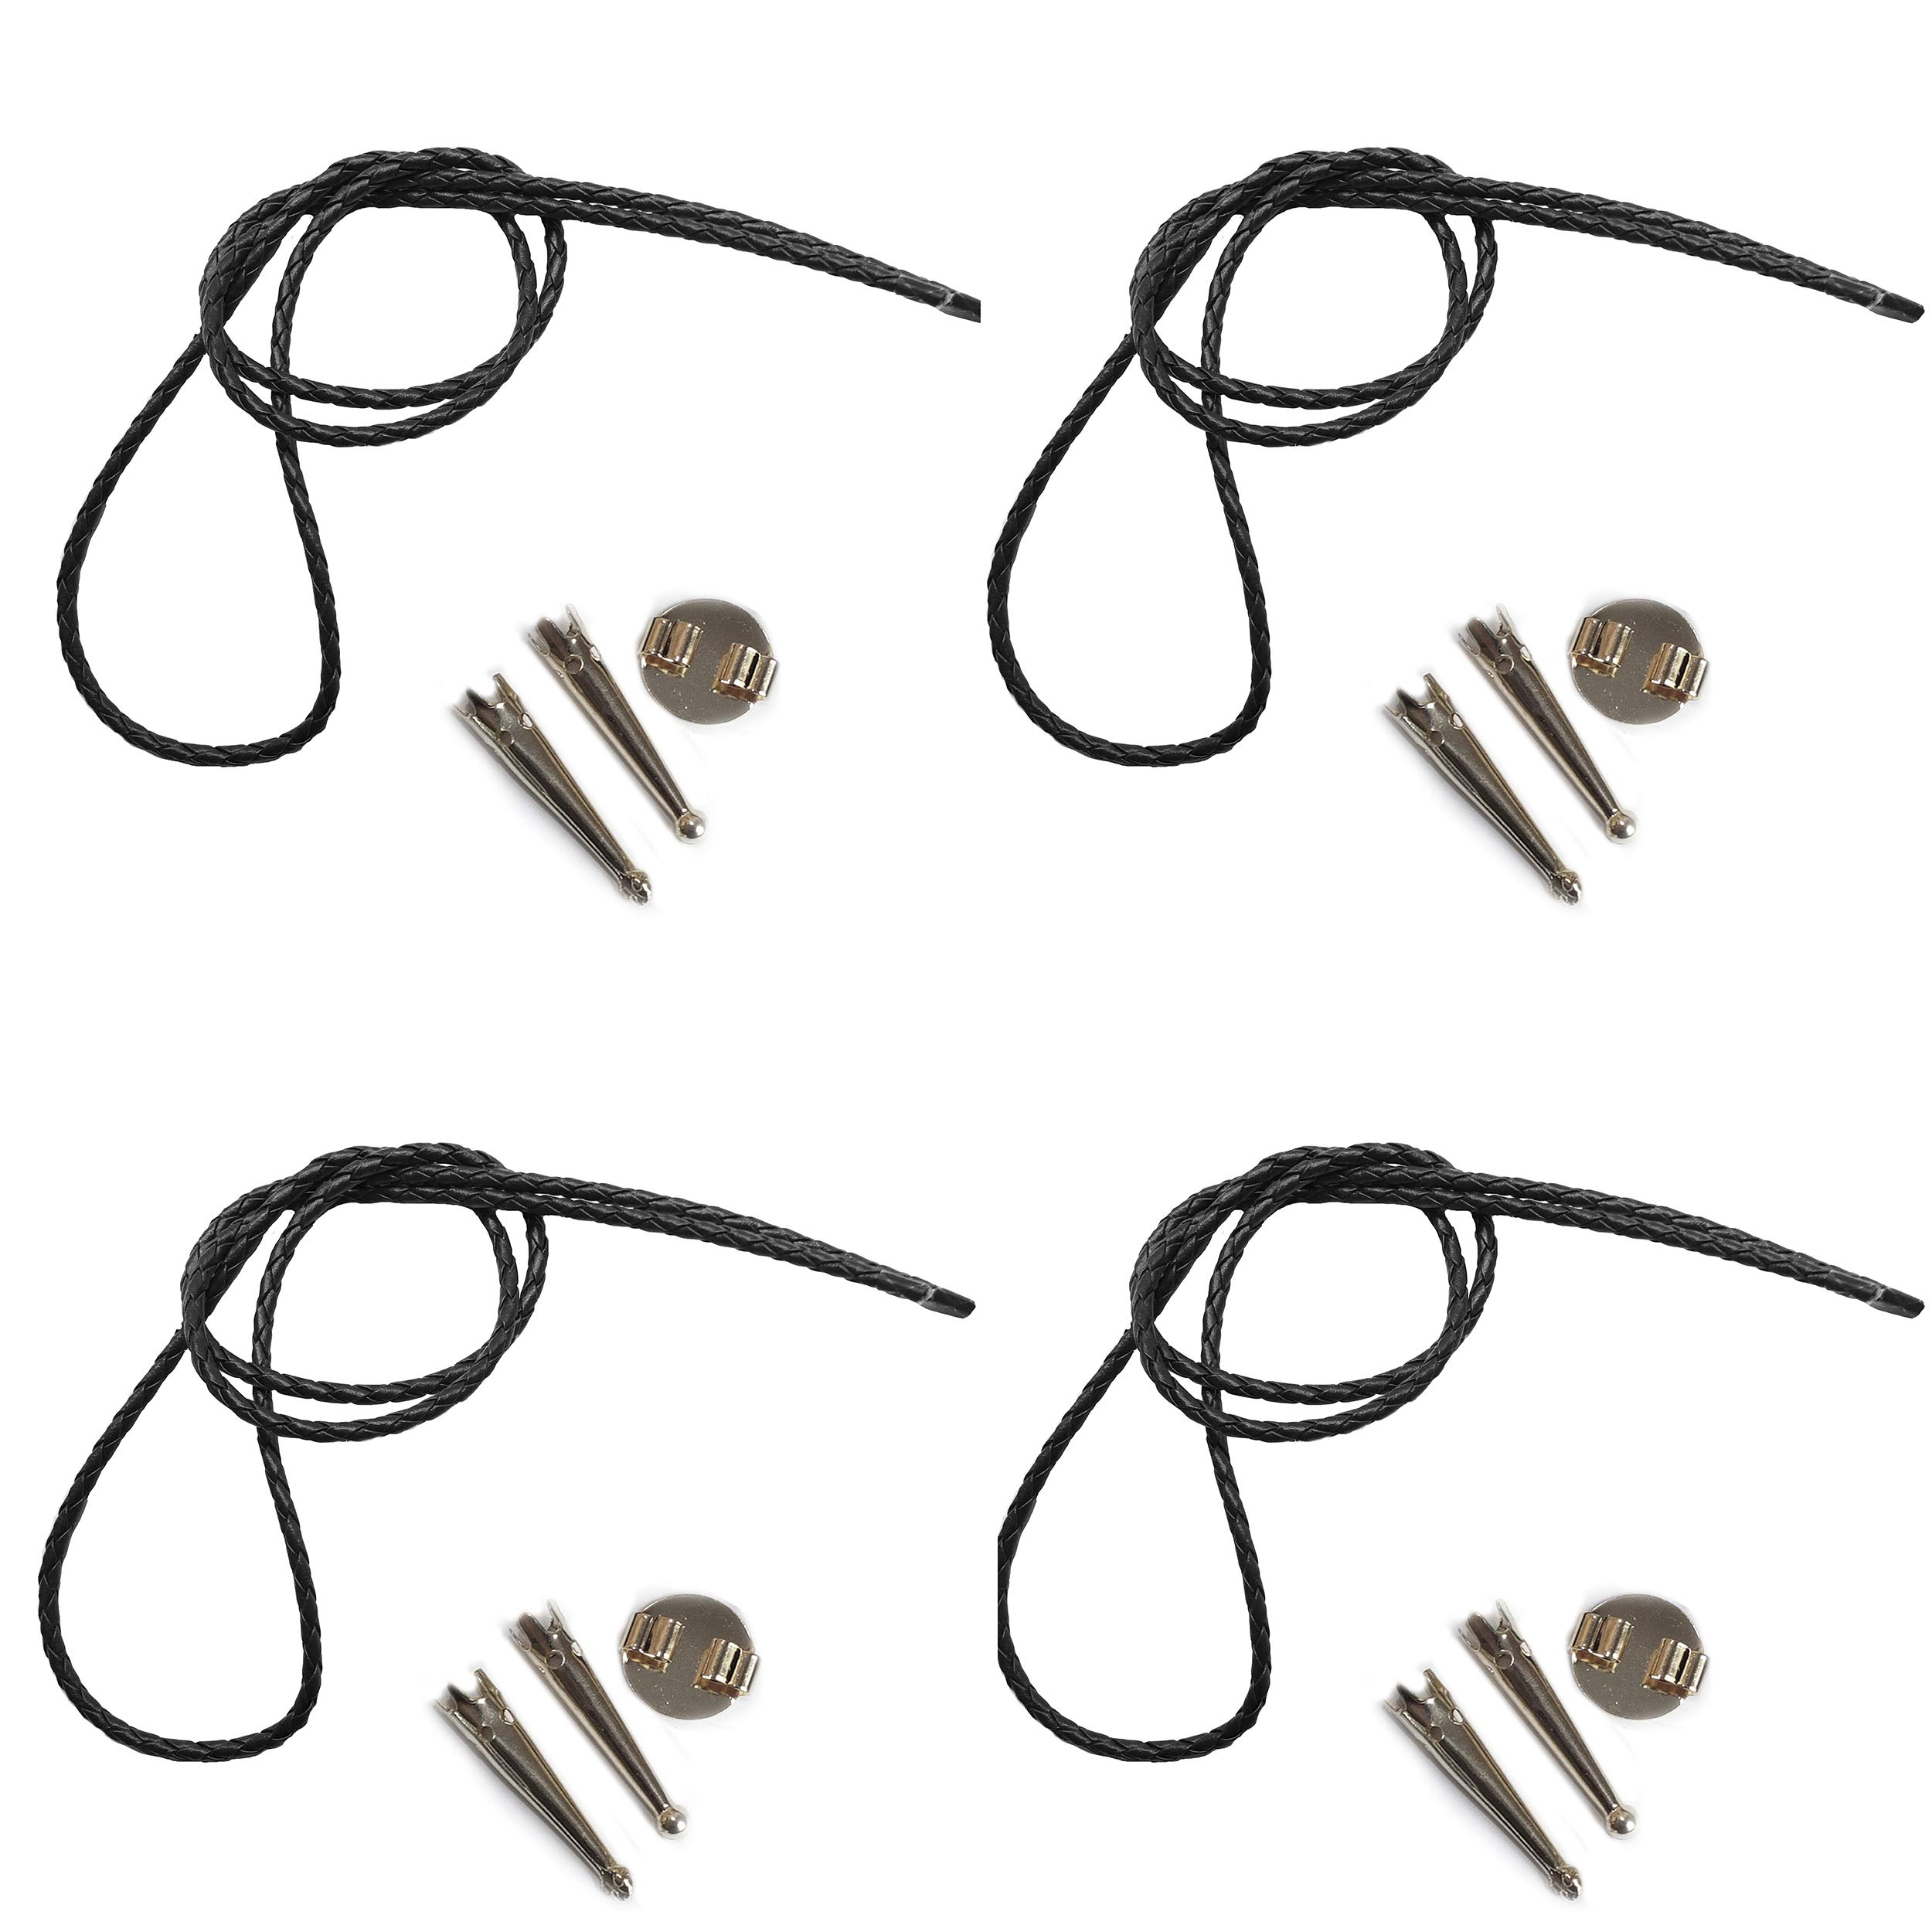 Blank Bolo String Tie Parts Kit Round Slide Smooth Tips Black Vinyl Braid DIY Silver Tone Supplies for 4 Ties